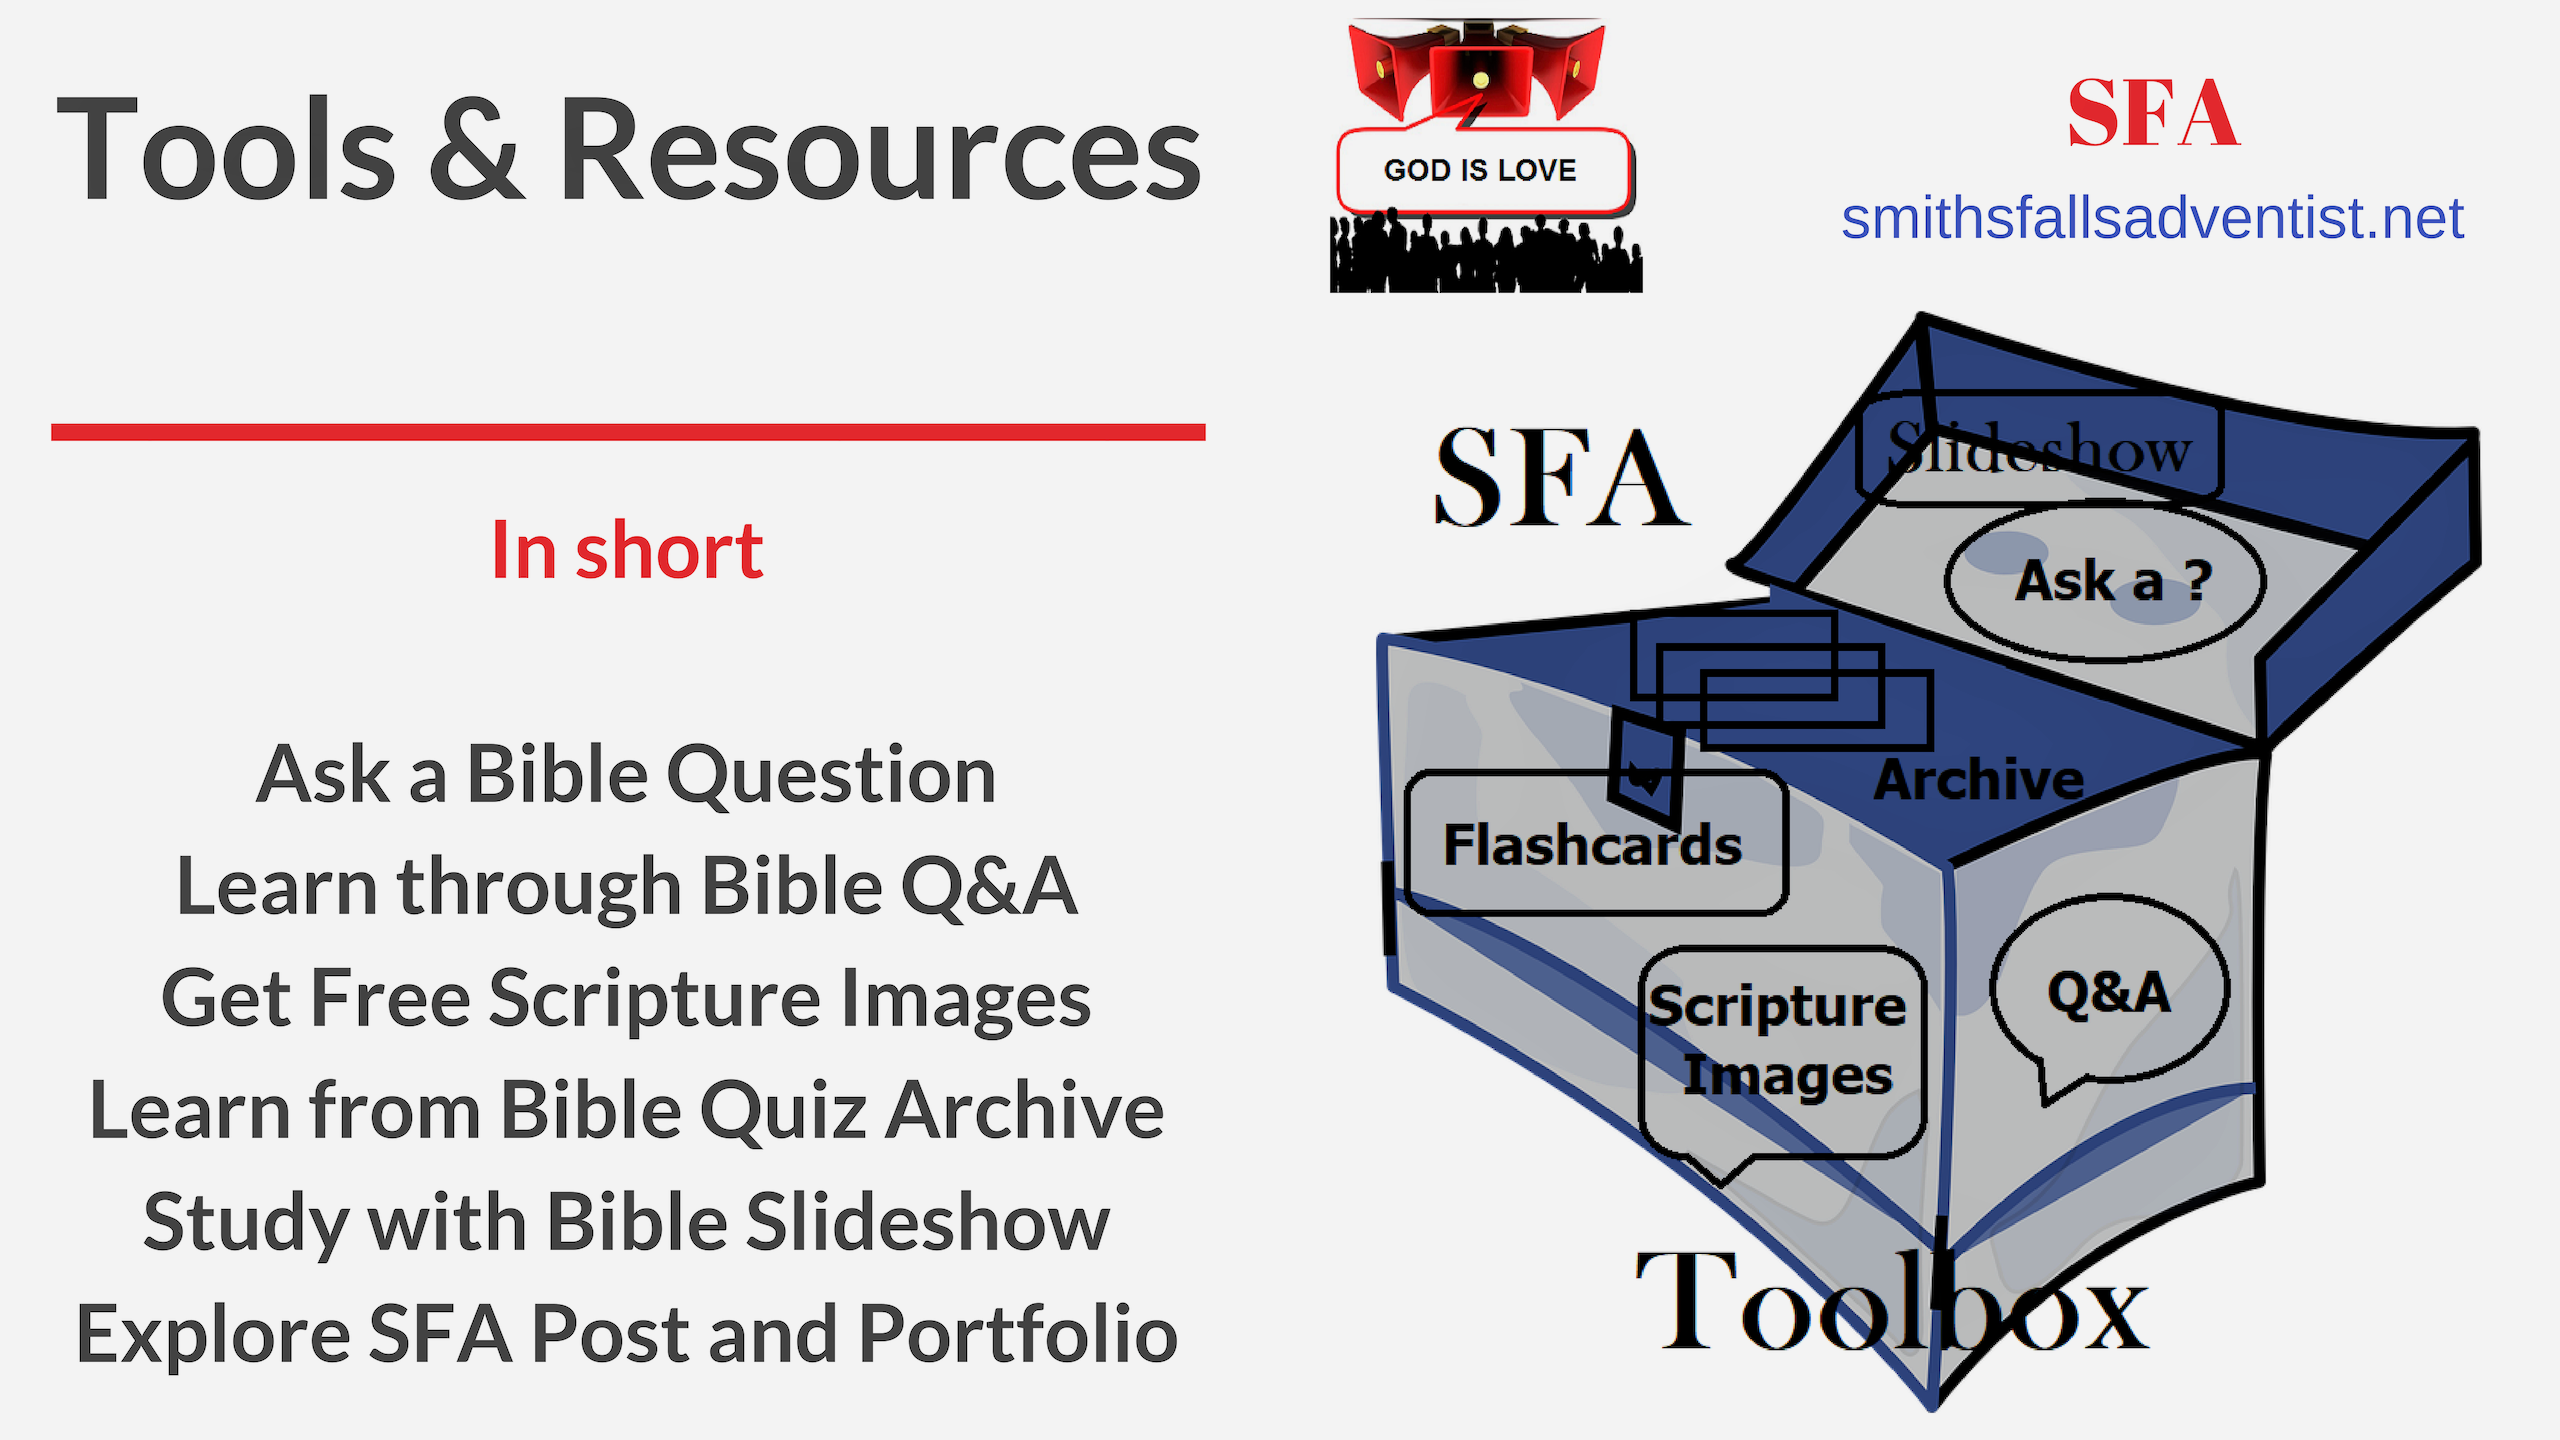 Title-Tools-Resources-text-logo